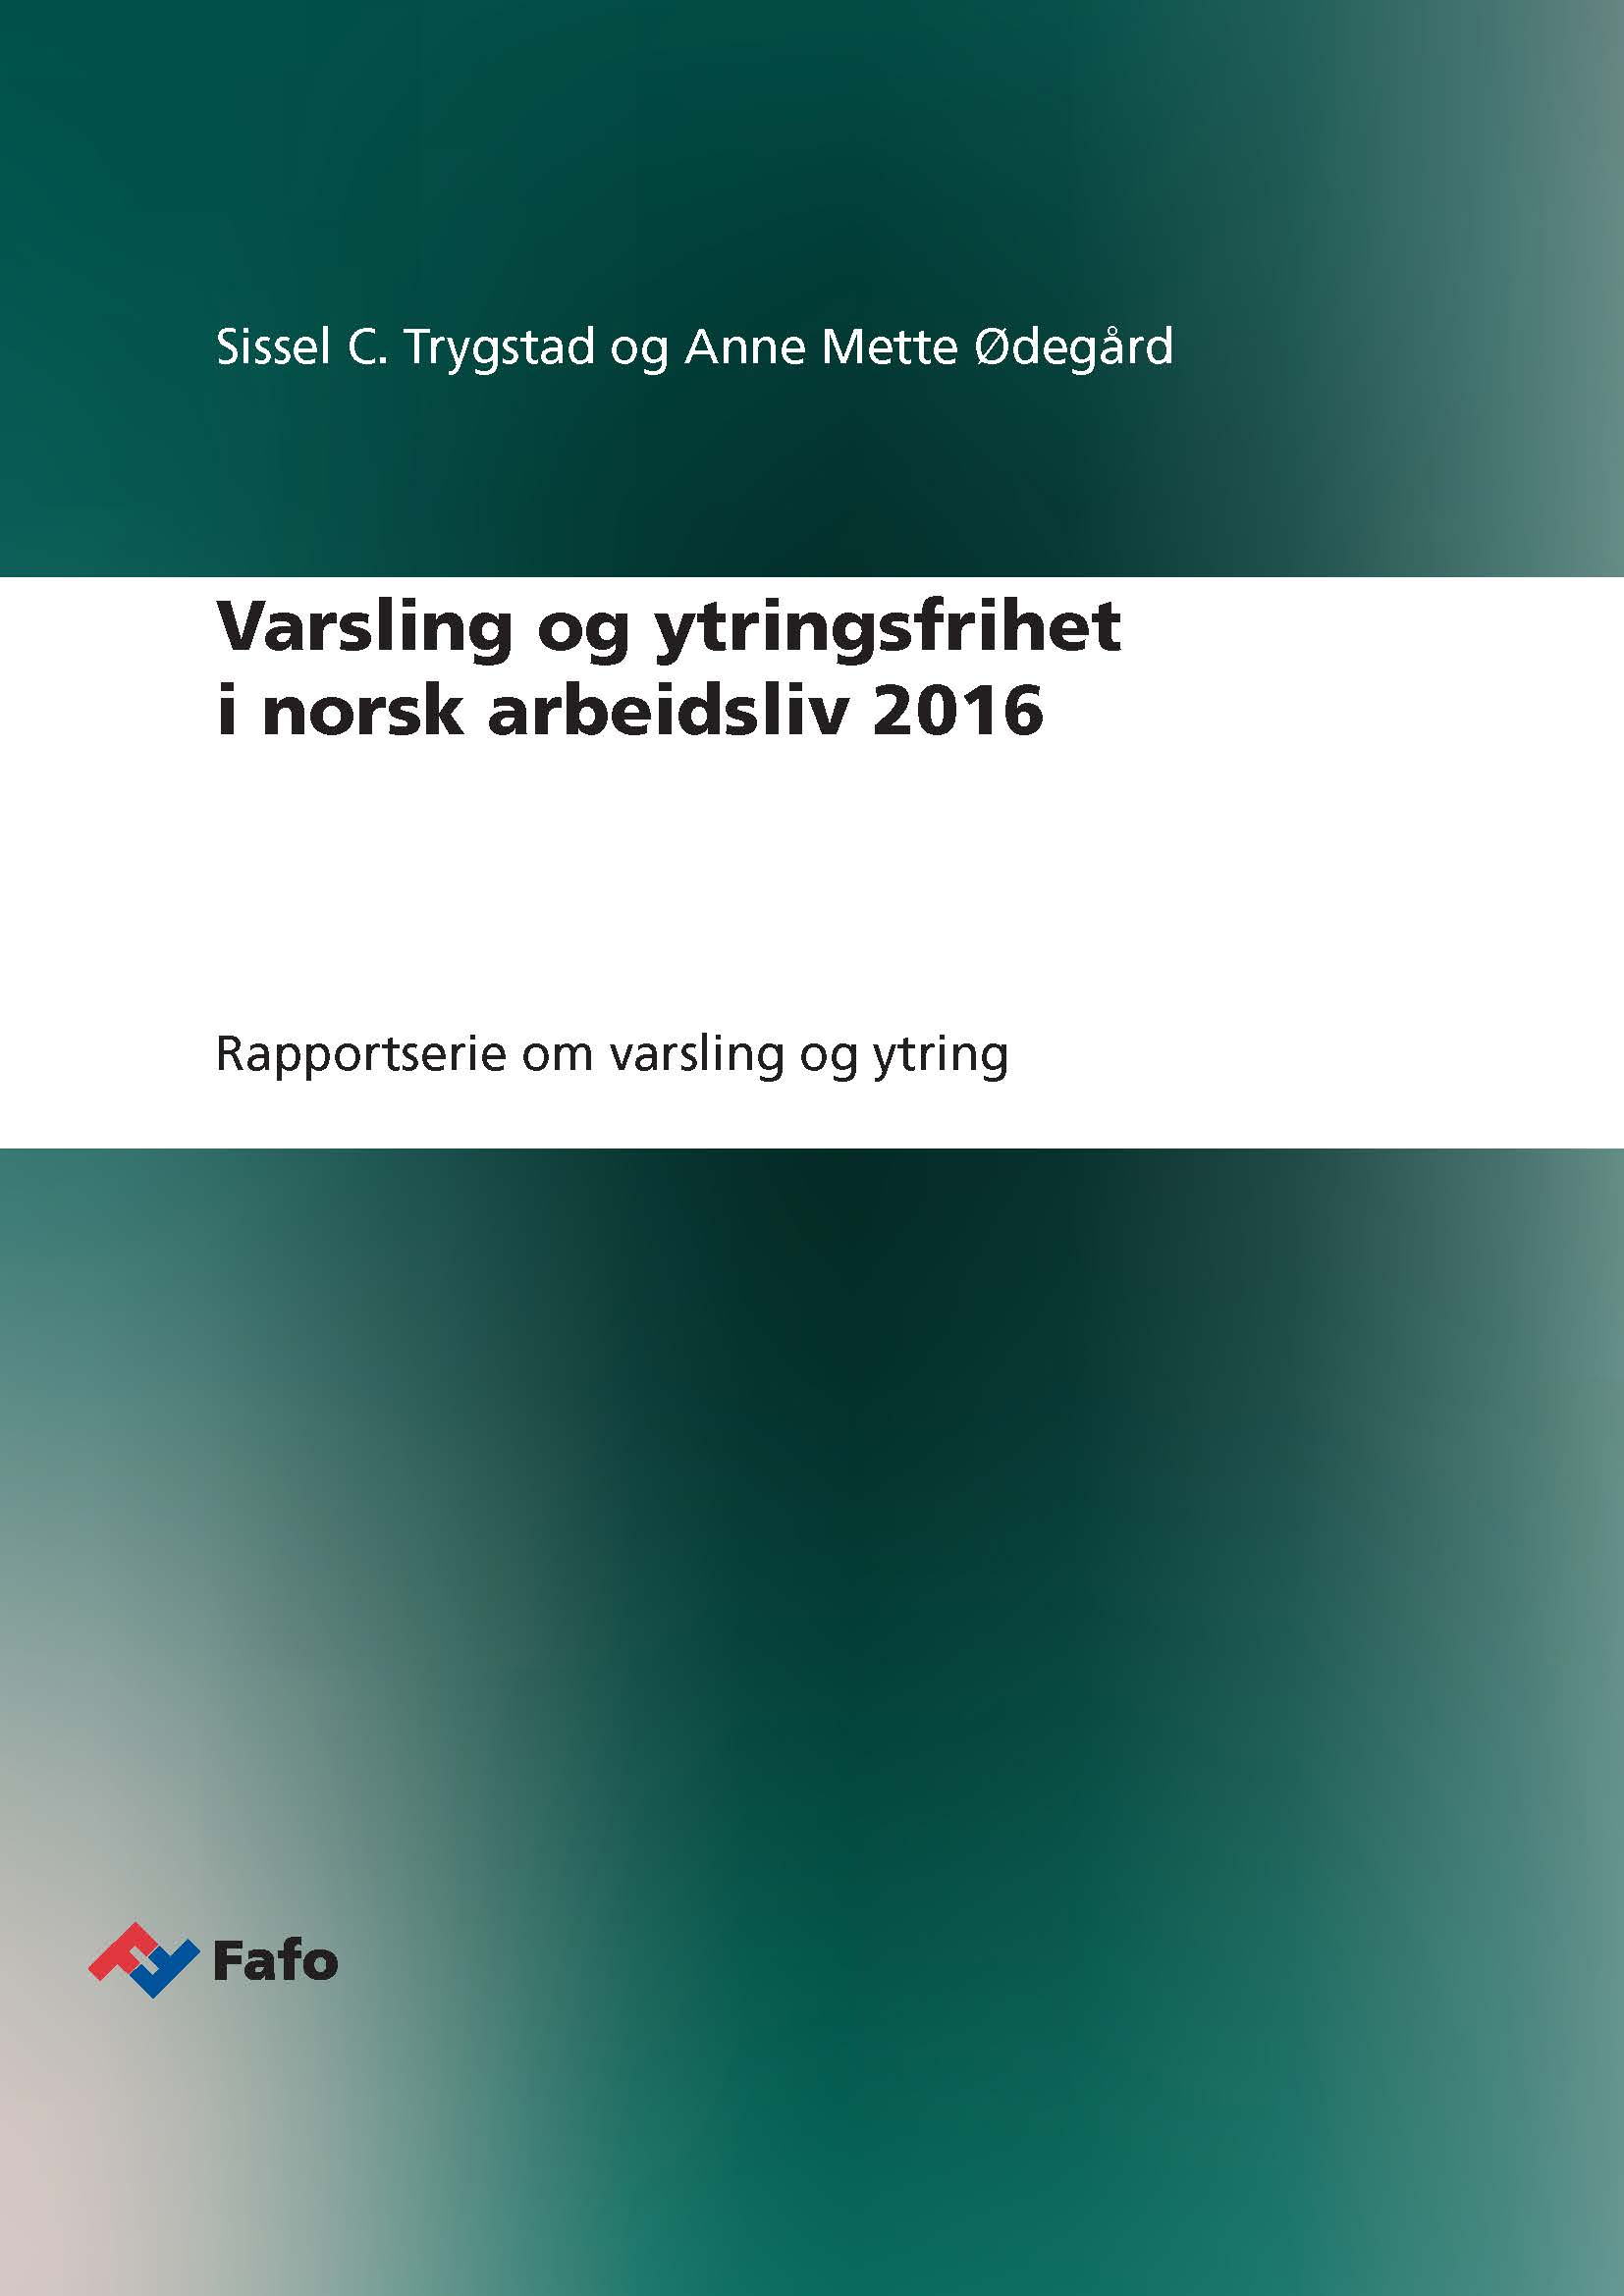 New reports on whistle-blowing and freedom of speech in Norwegian working life